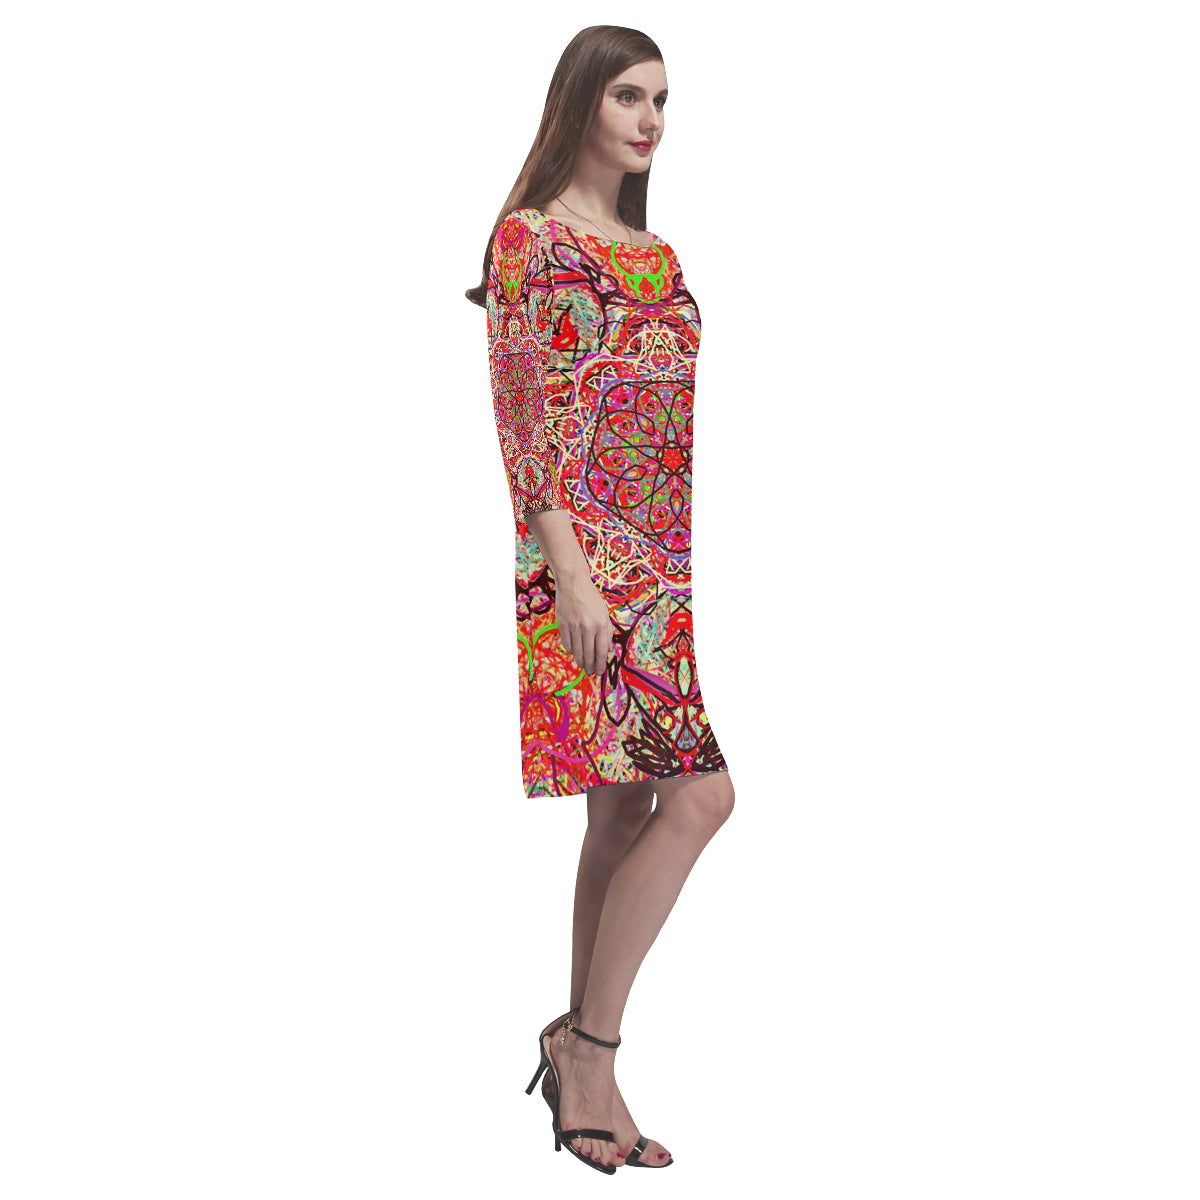 Thleudron Women's The Ring Rhea Loose Round Neck Dress(Model D22) - Thleudron